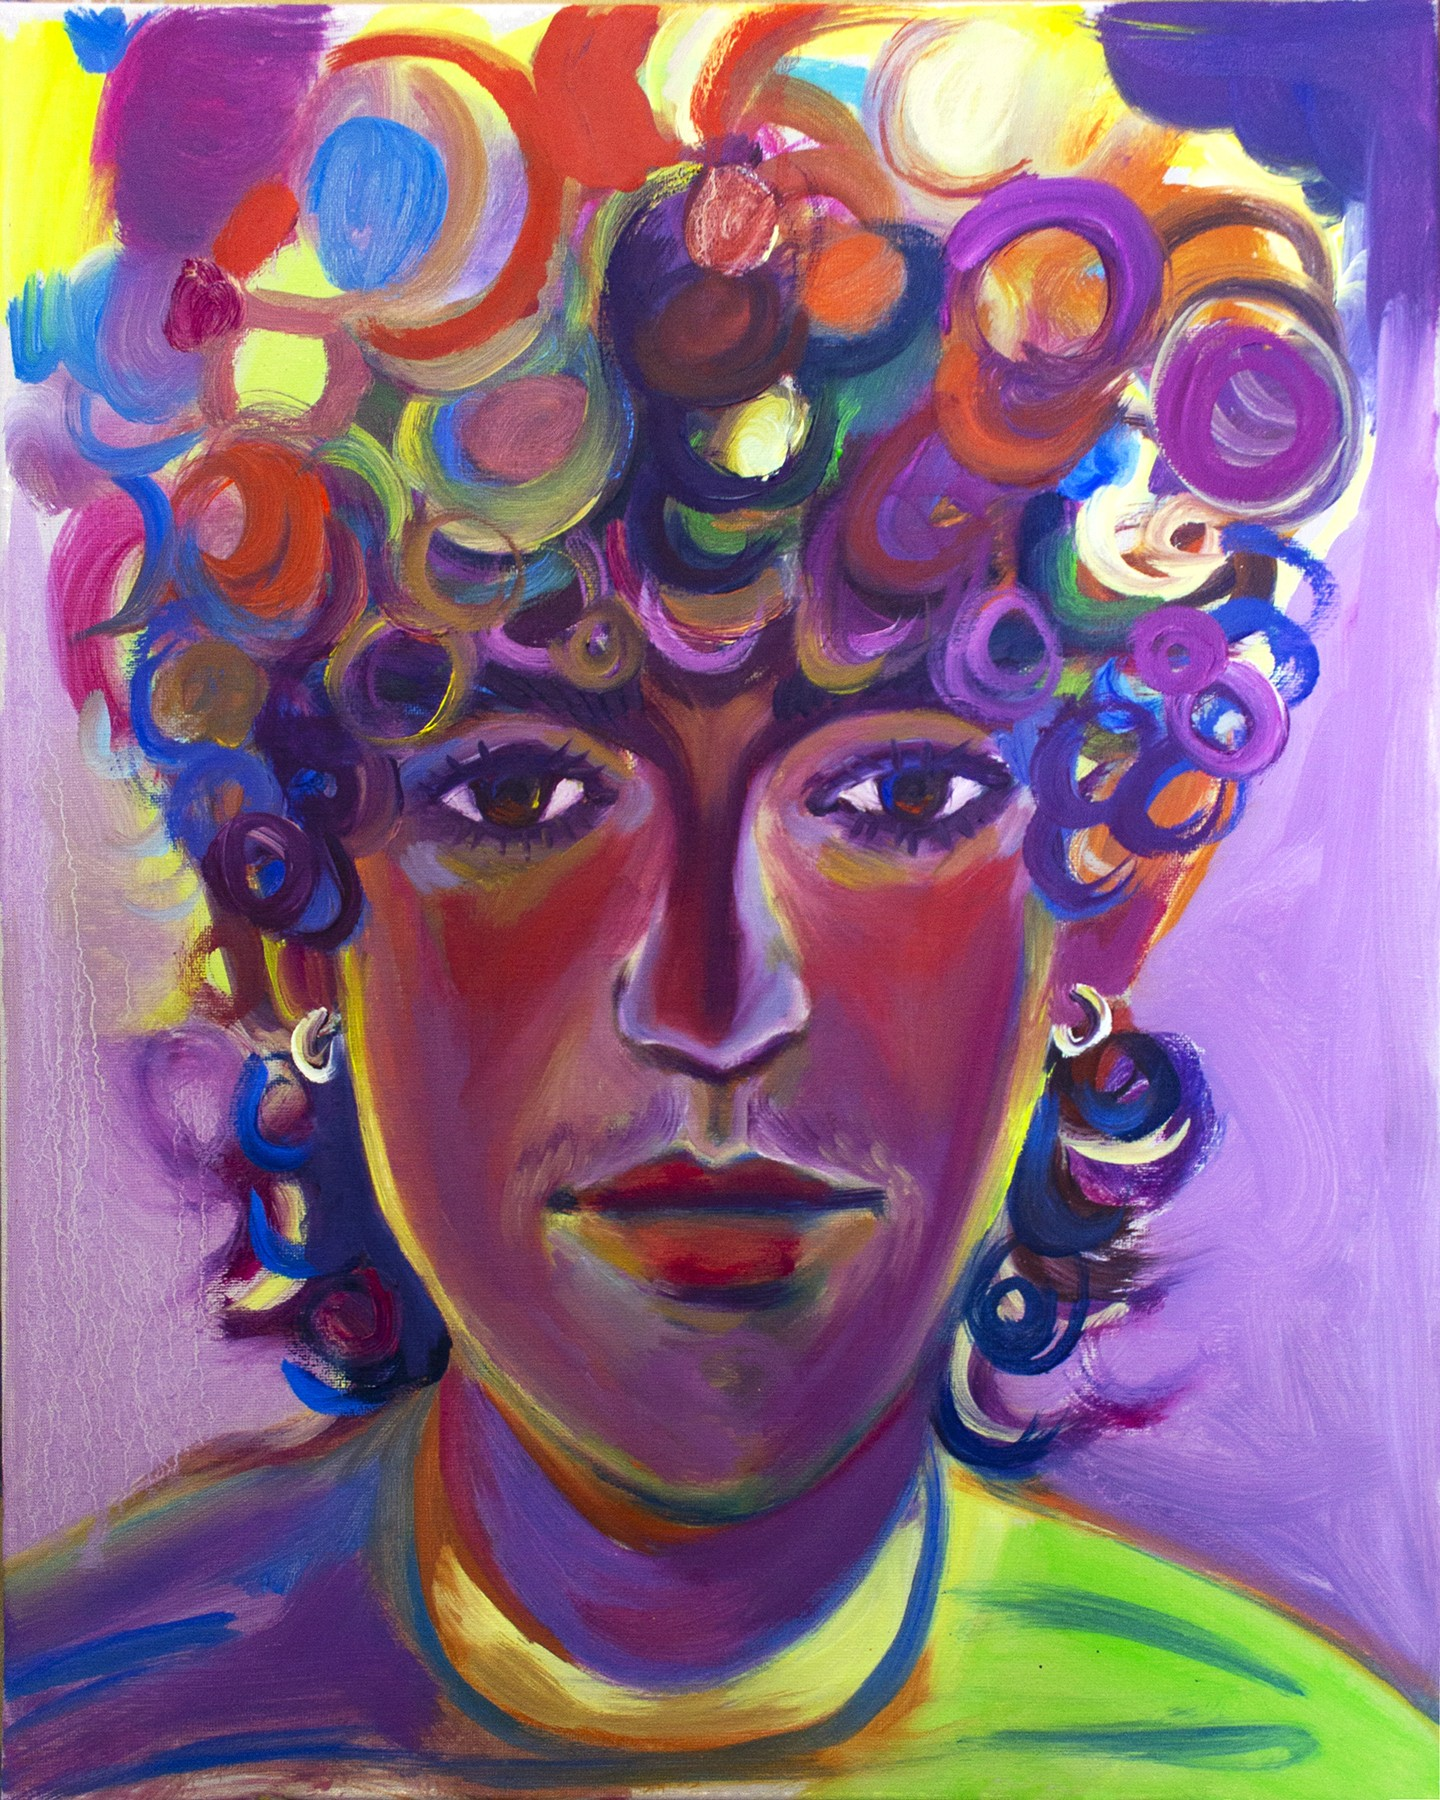 A close up portrait of a face, directly gazing at the viewer, painted with vibrant hues of purples, reds, blues, and greens.